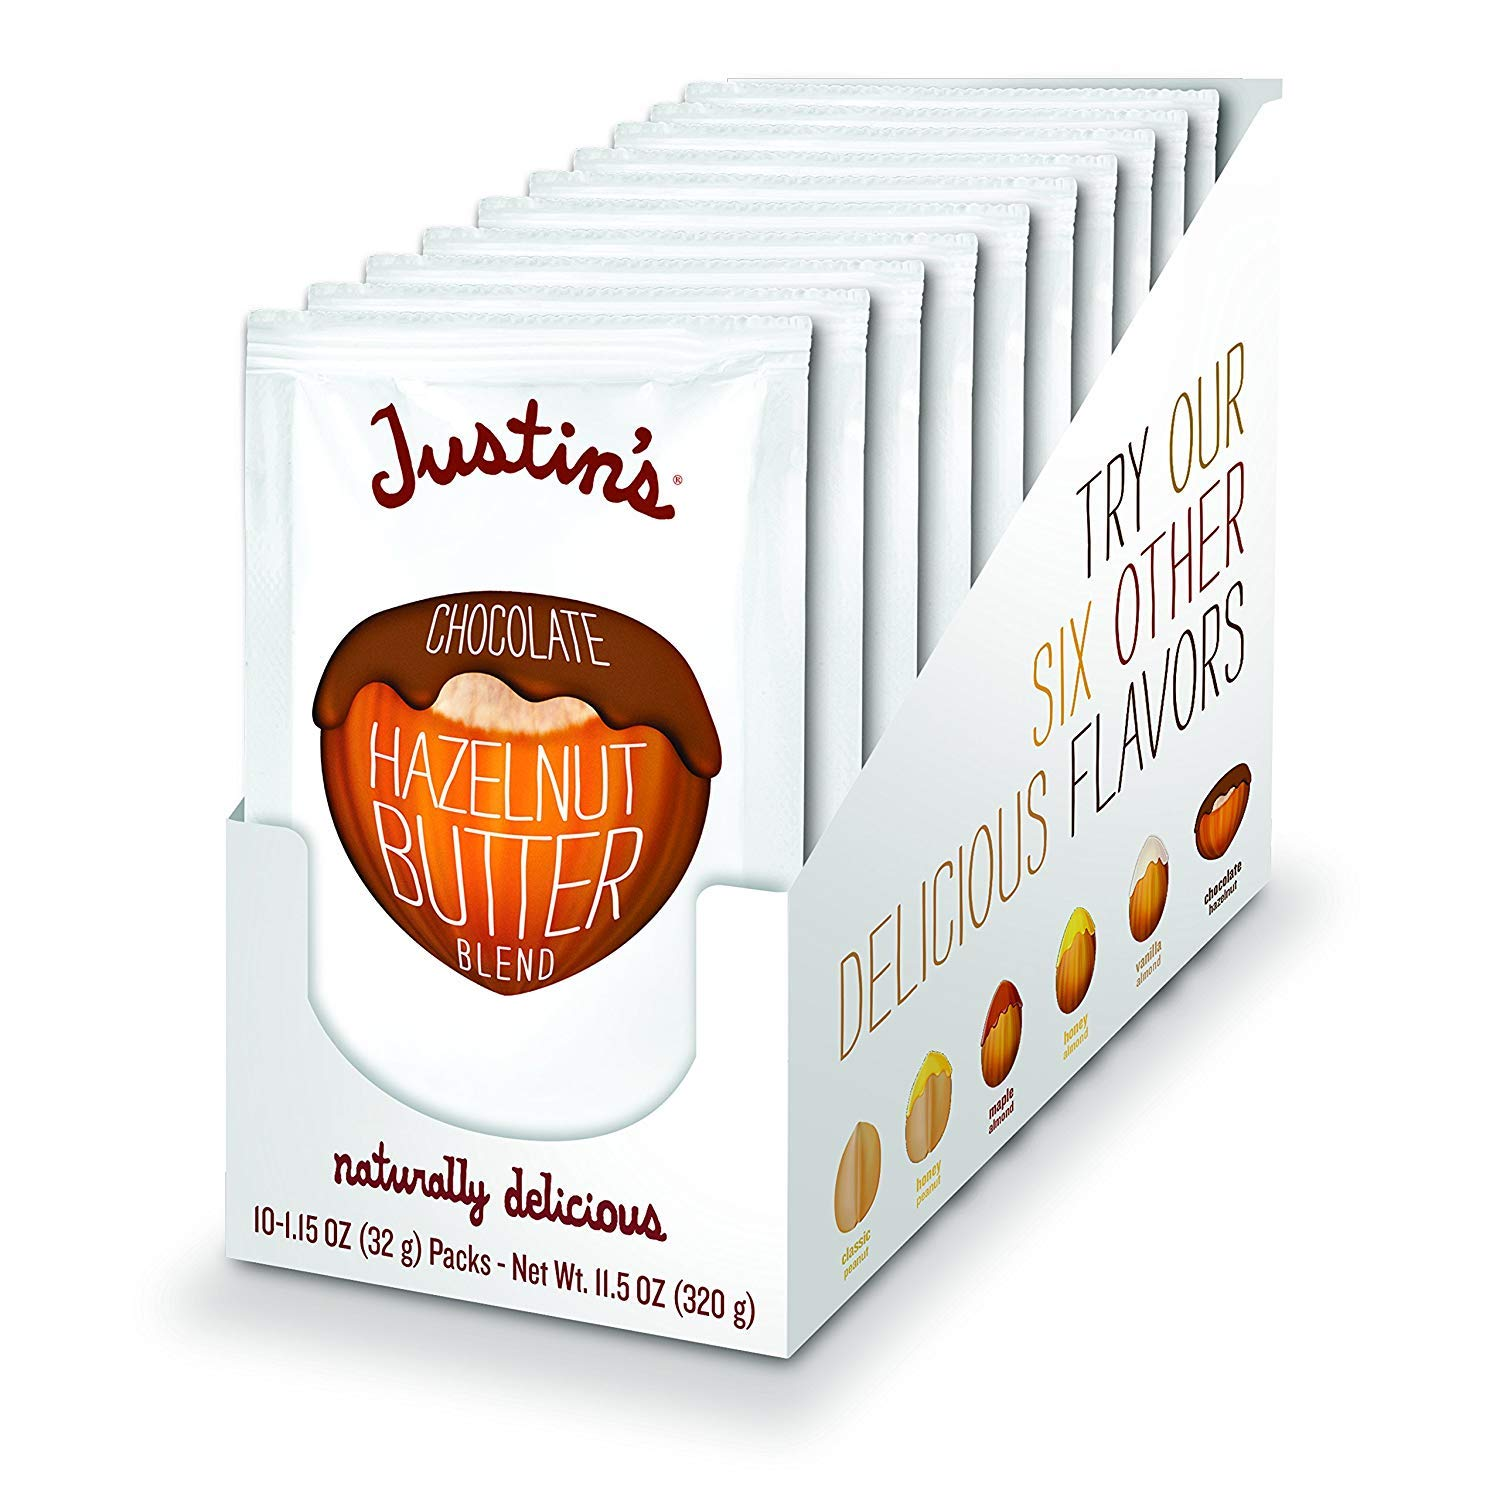 Chocolate Hazelnut Nut Butter Individual Squeeze Packs by Justin's | Organic Cocoa | Gluten-free | Naturally Delicious | Responsibly Sourced | Ready To Eat | Value 10 Pack | 1.15oz Each